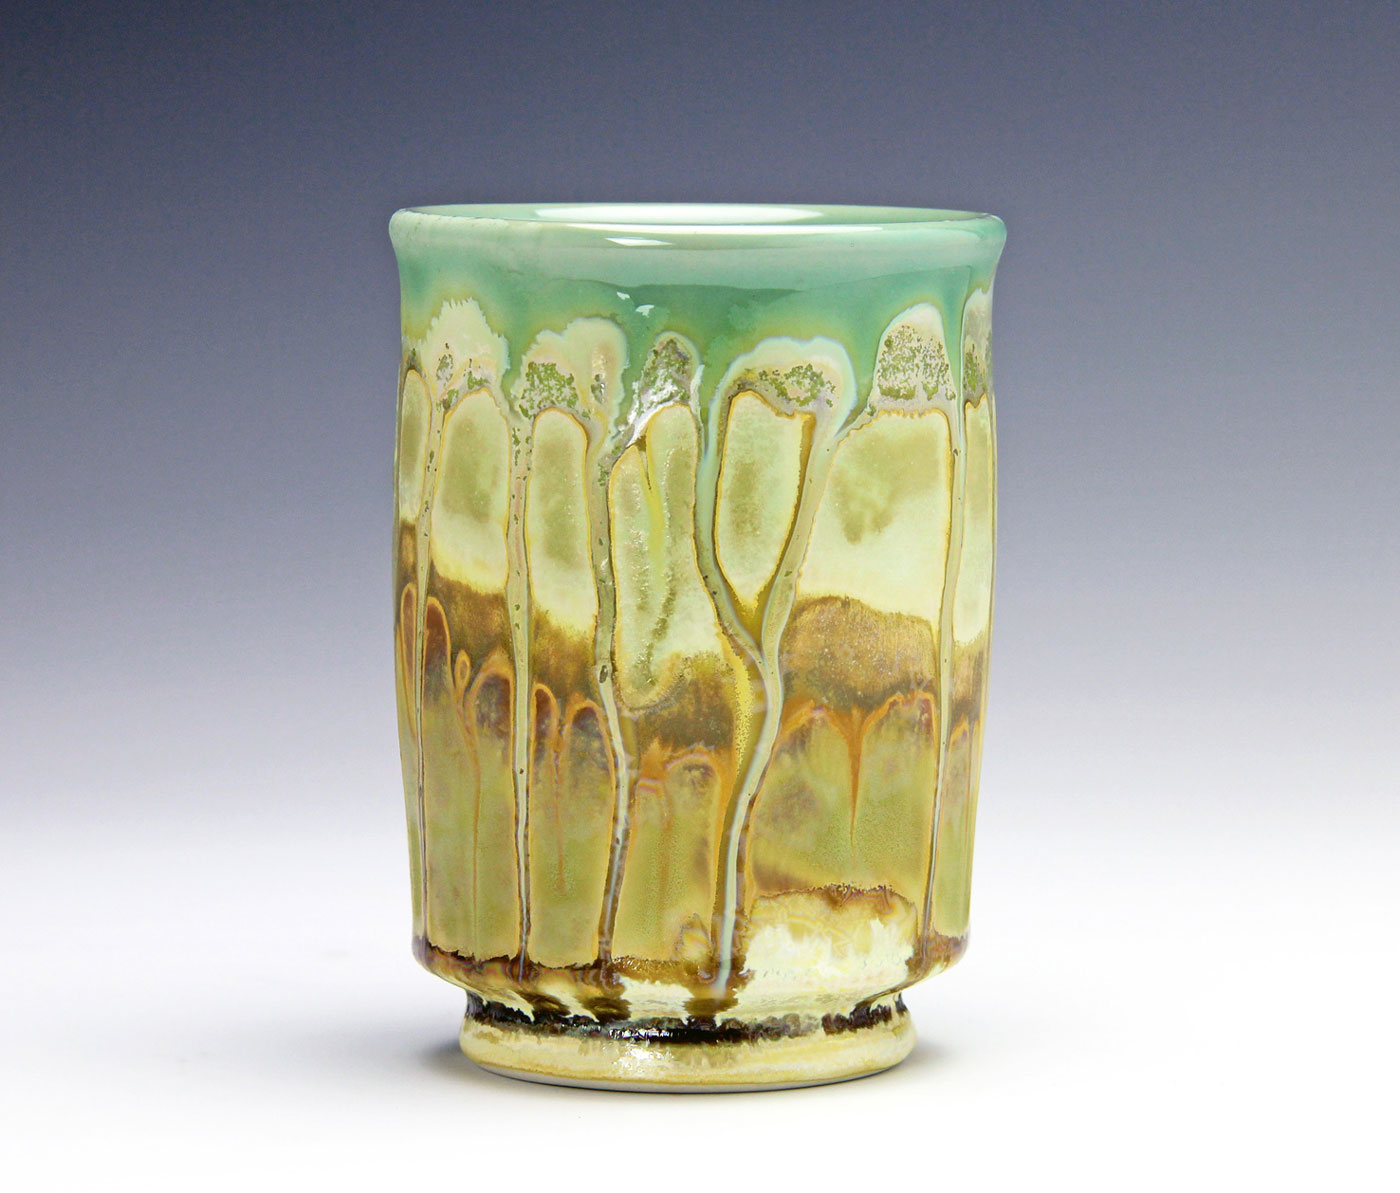 Art-Flow-contemporary-clay-cup-Samantha-Henneke-Seagrove-Pottery.jpg